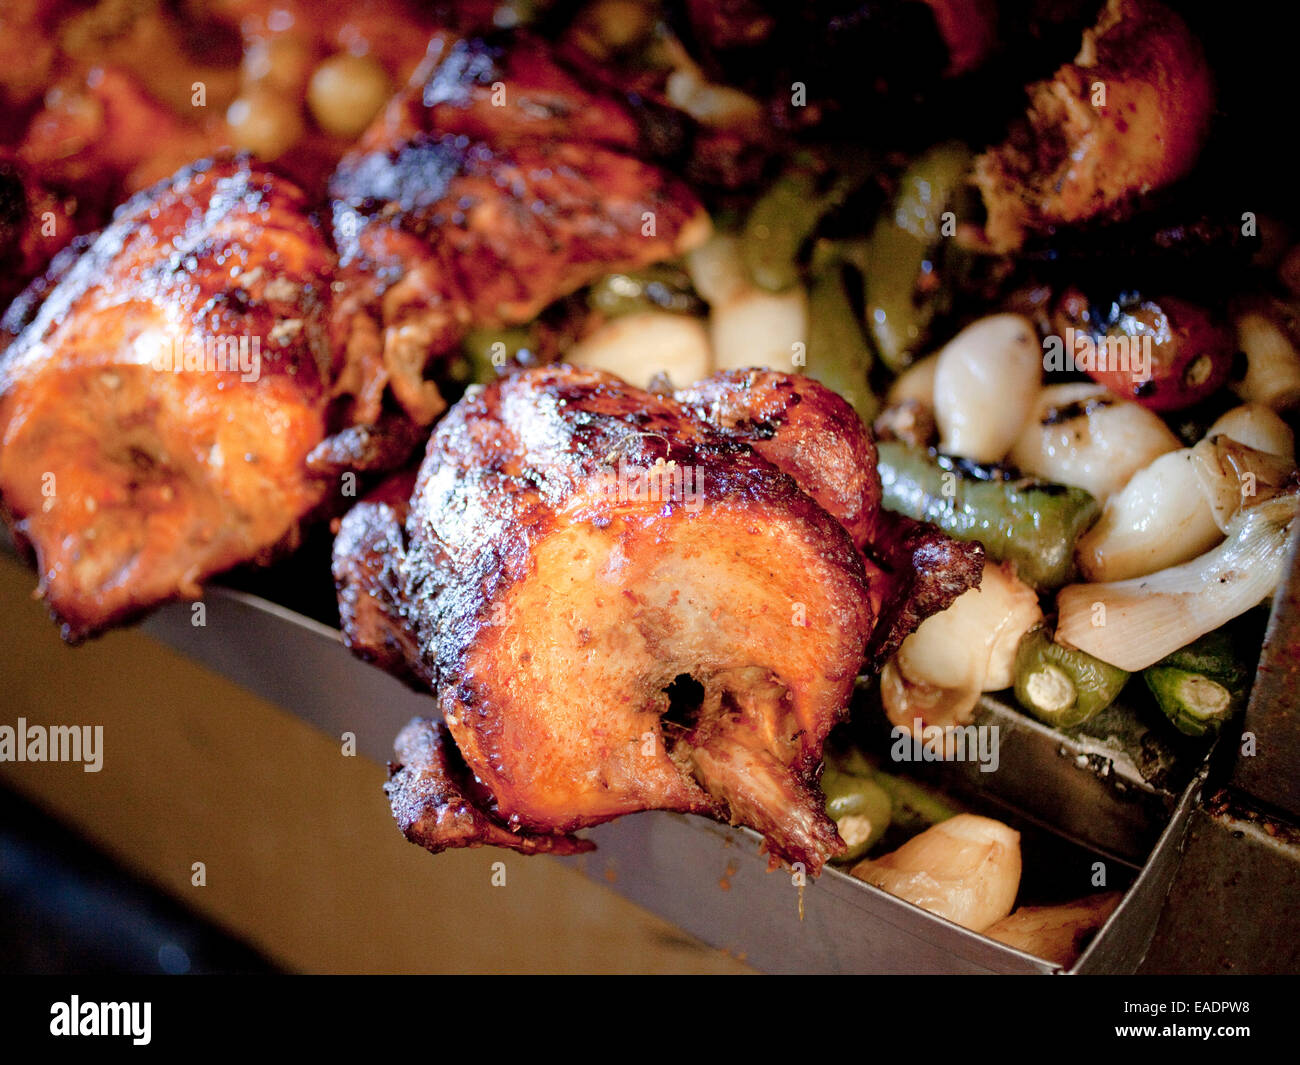 Chicken roasting on spigot with various vegetables - Stock Image